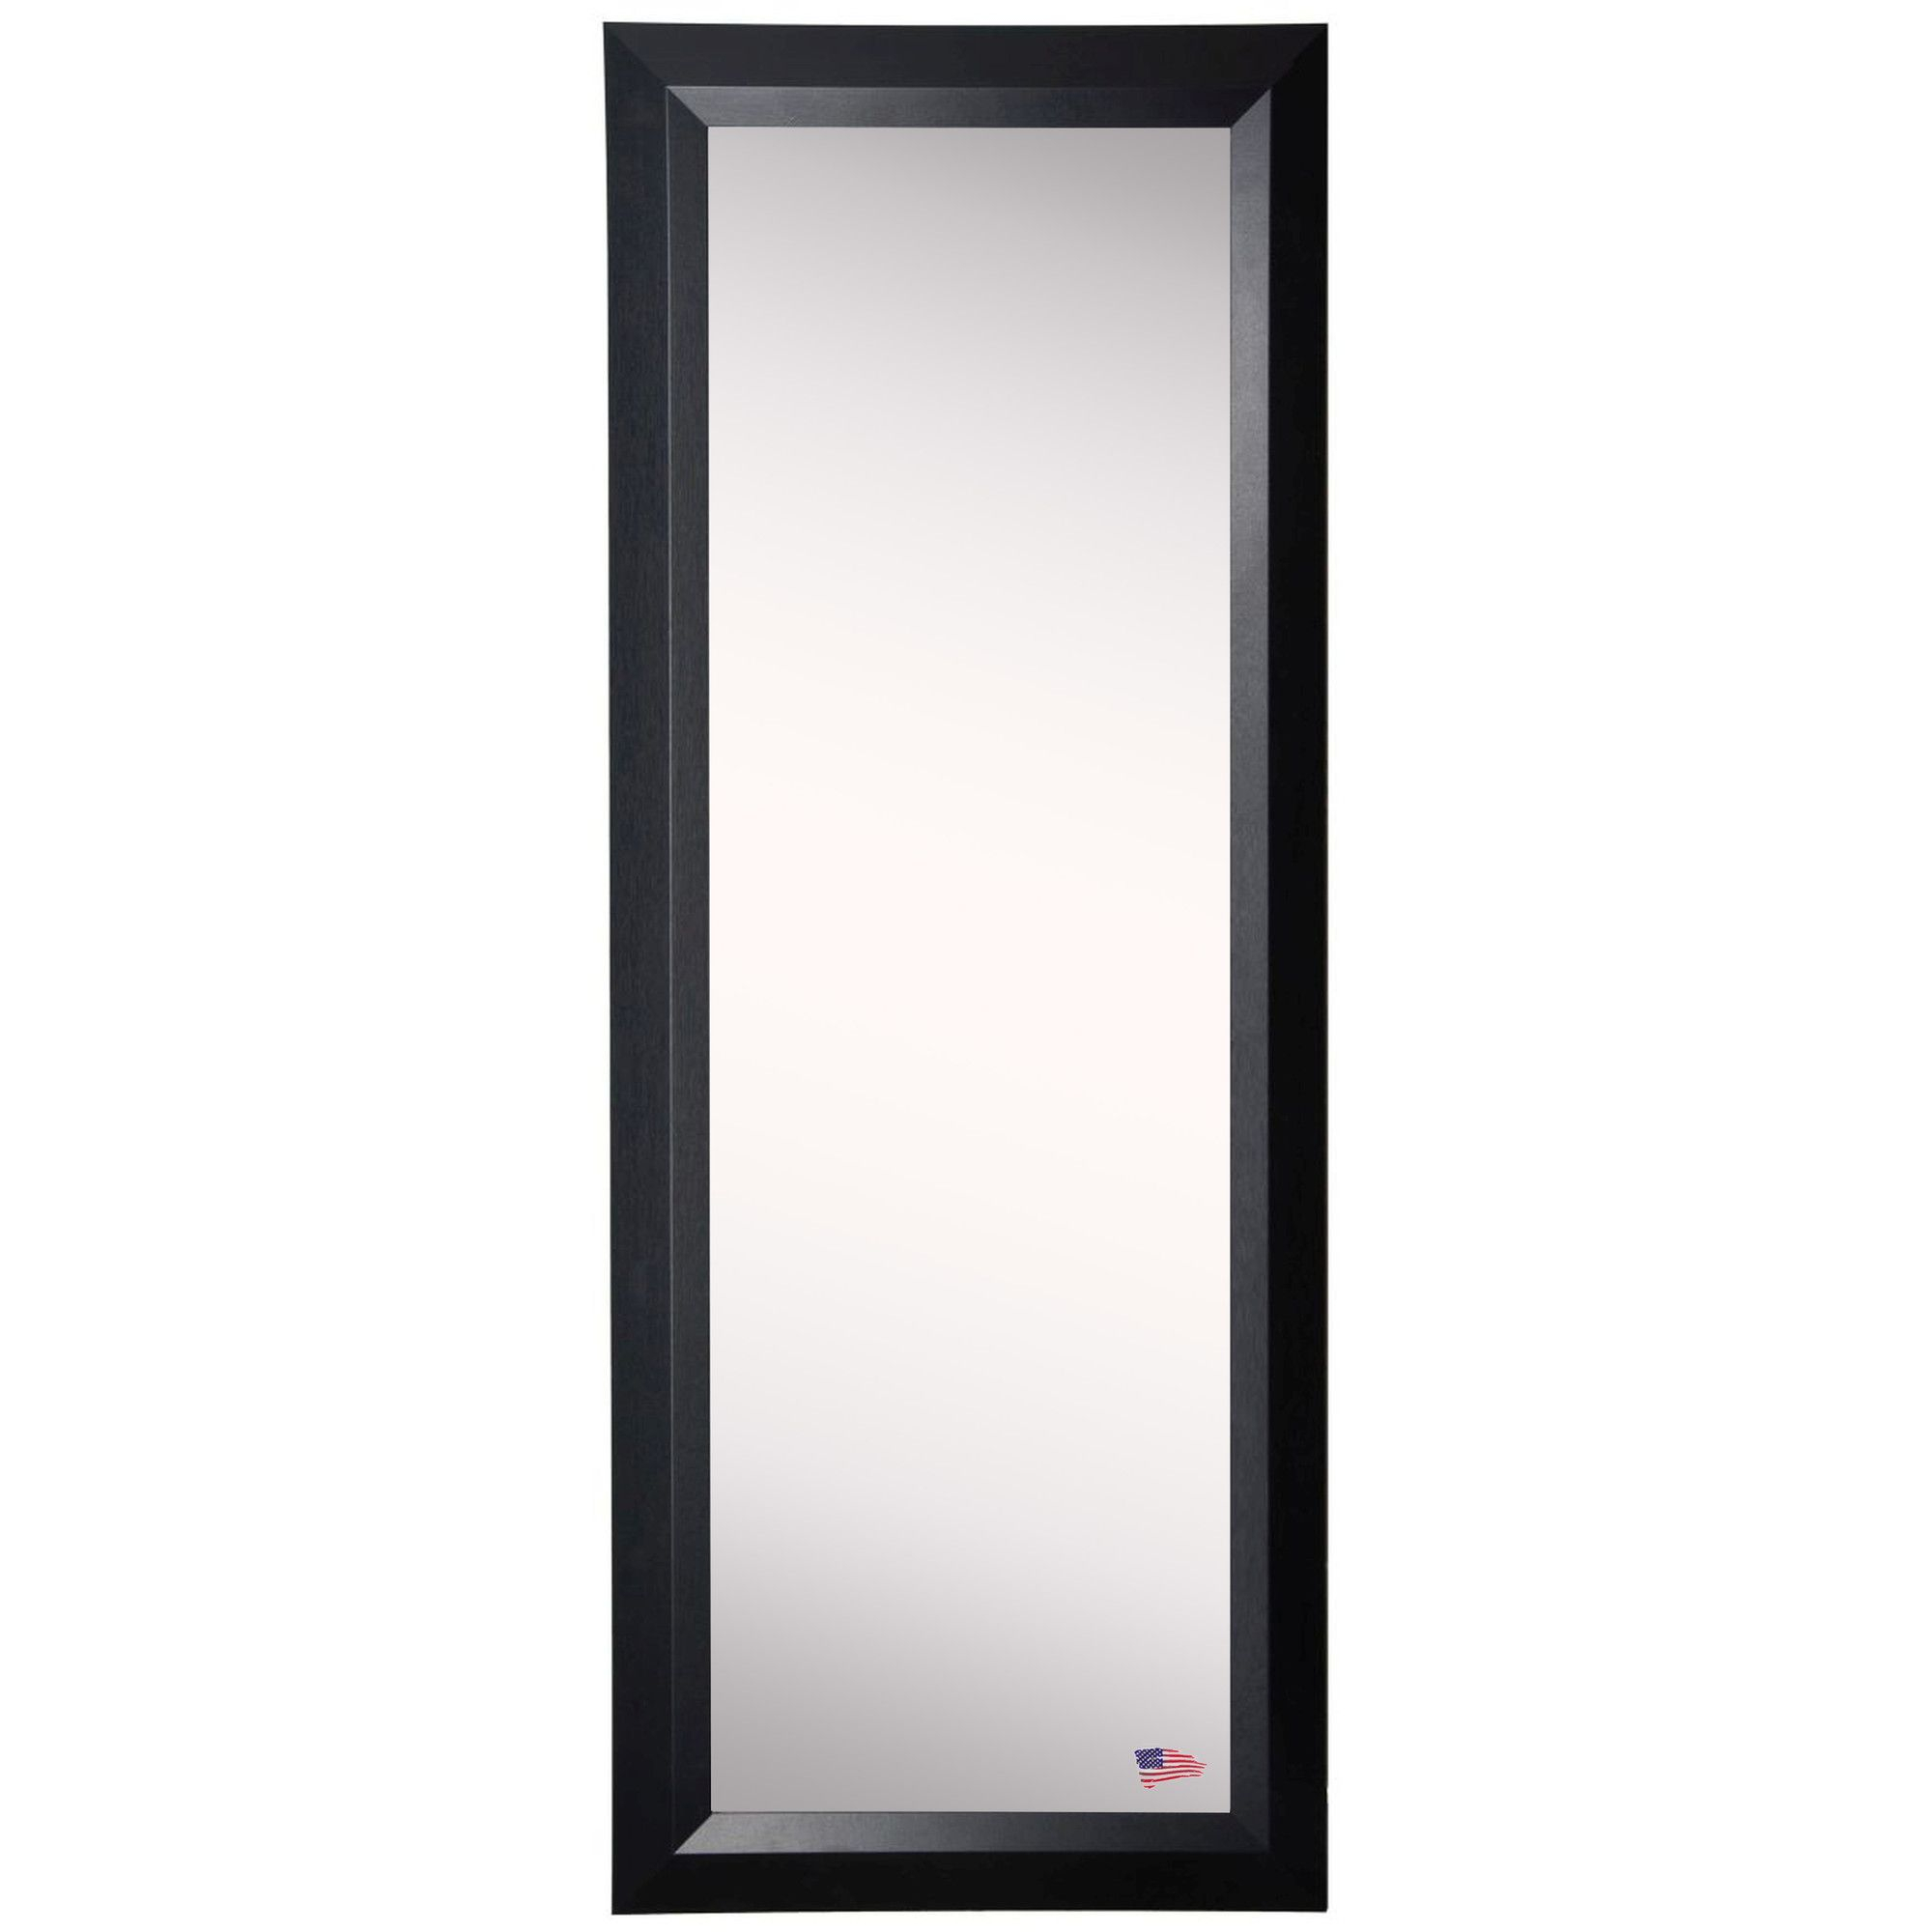 Ava Popular Black Slant Full Length Body Mirror | Products In Dalessio Wide Tall Full Length Mirrors (Image 2 of 20)